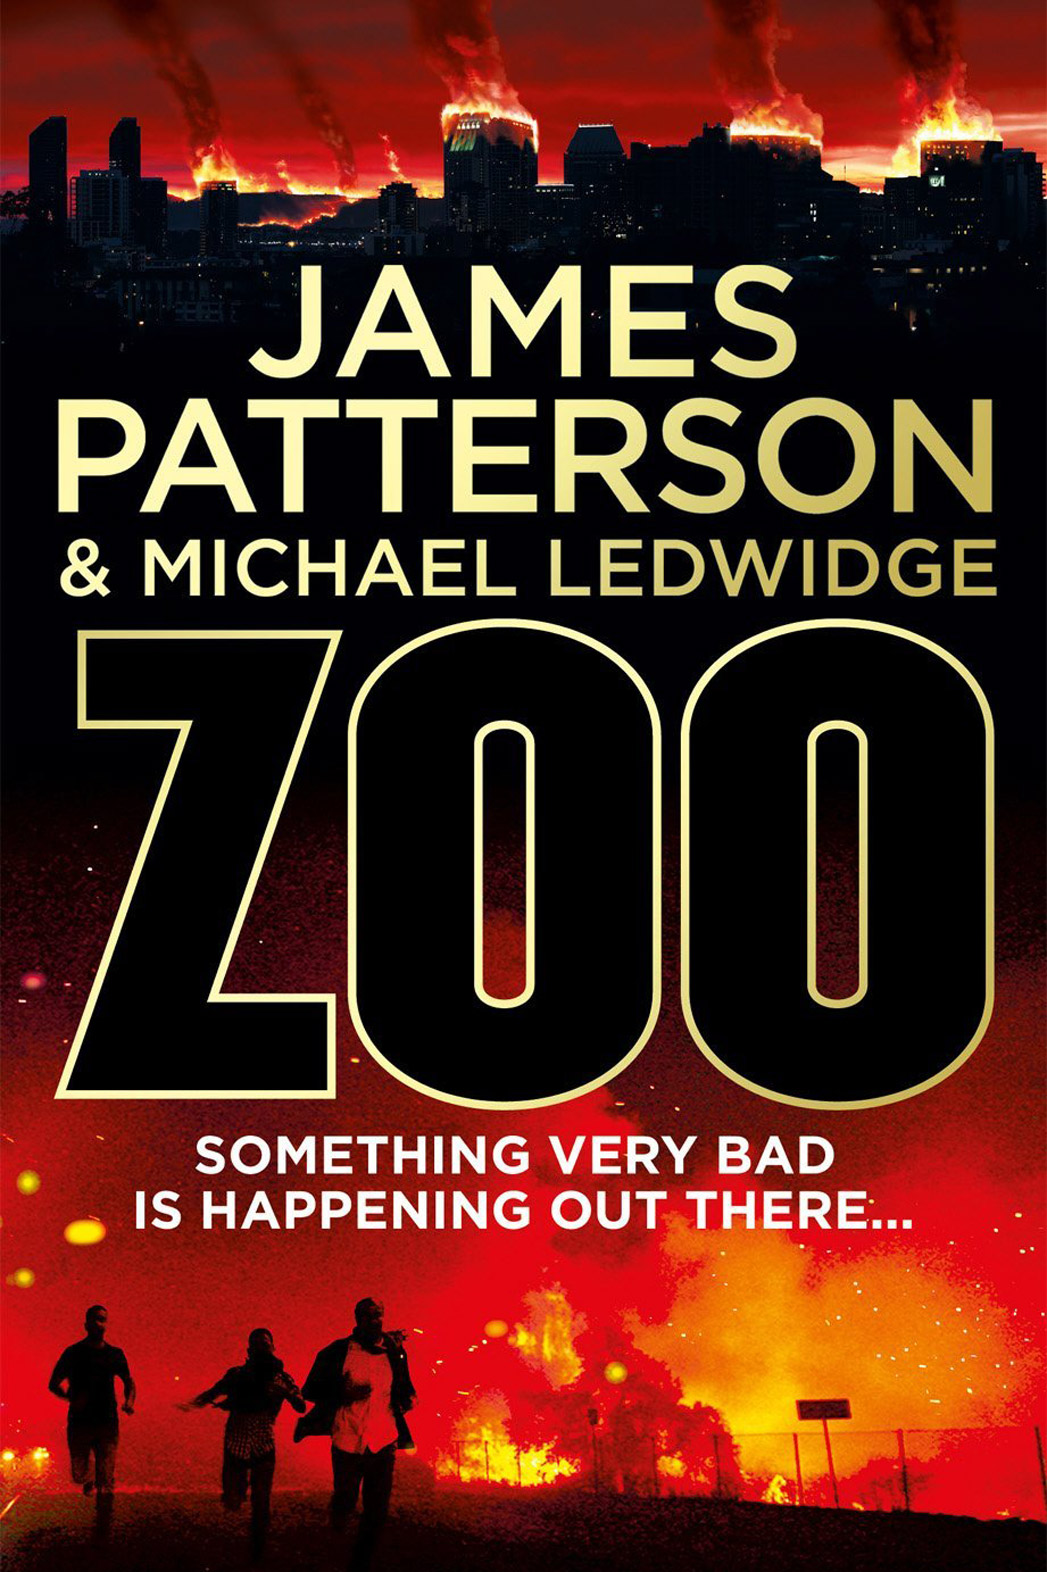 Cbs Inks Rich Netflix Deal For James Patterson Drama Zoo Hollywood Reporter